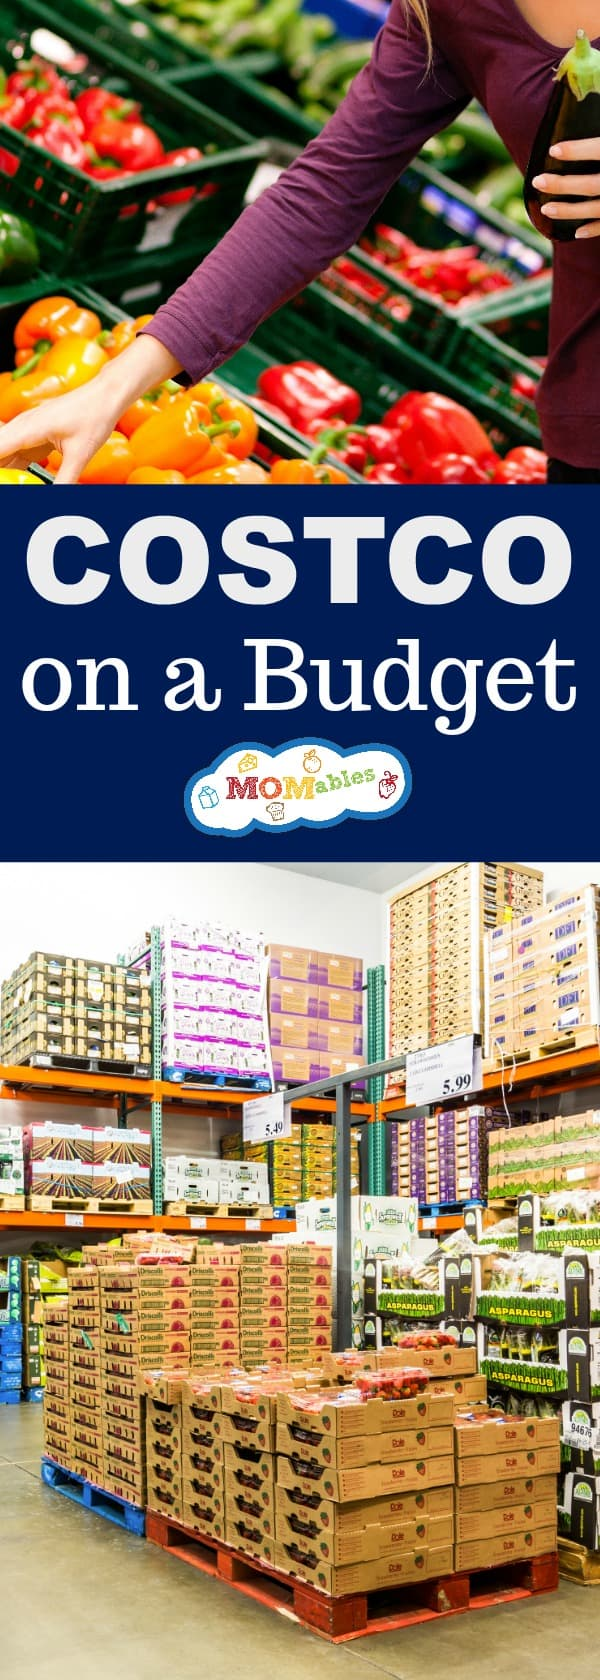 In love with Costco, Sams, or your wholesale club? We are too! Check out my list of things to buy when feeding a family real food on a budget!